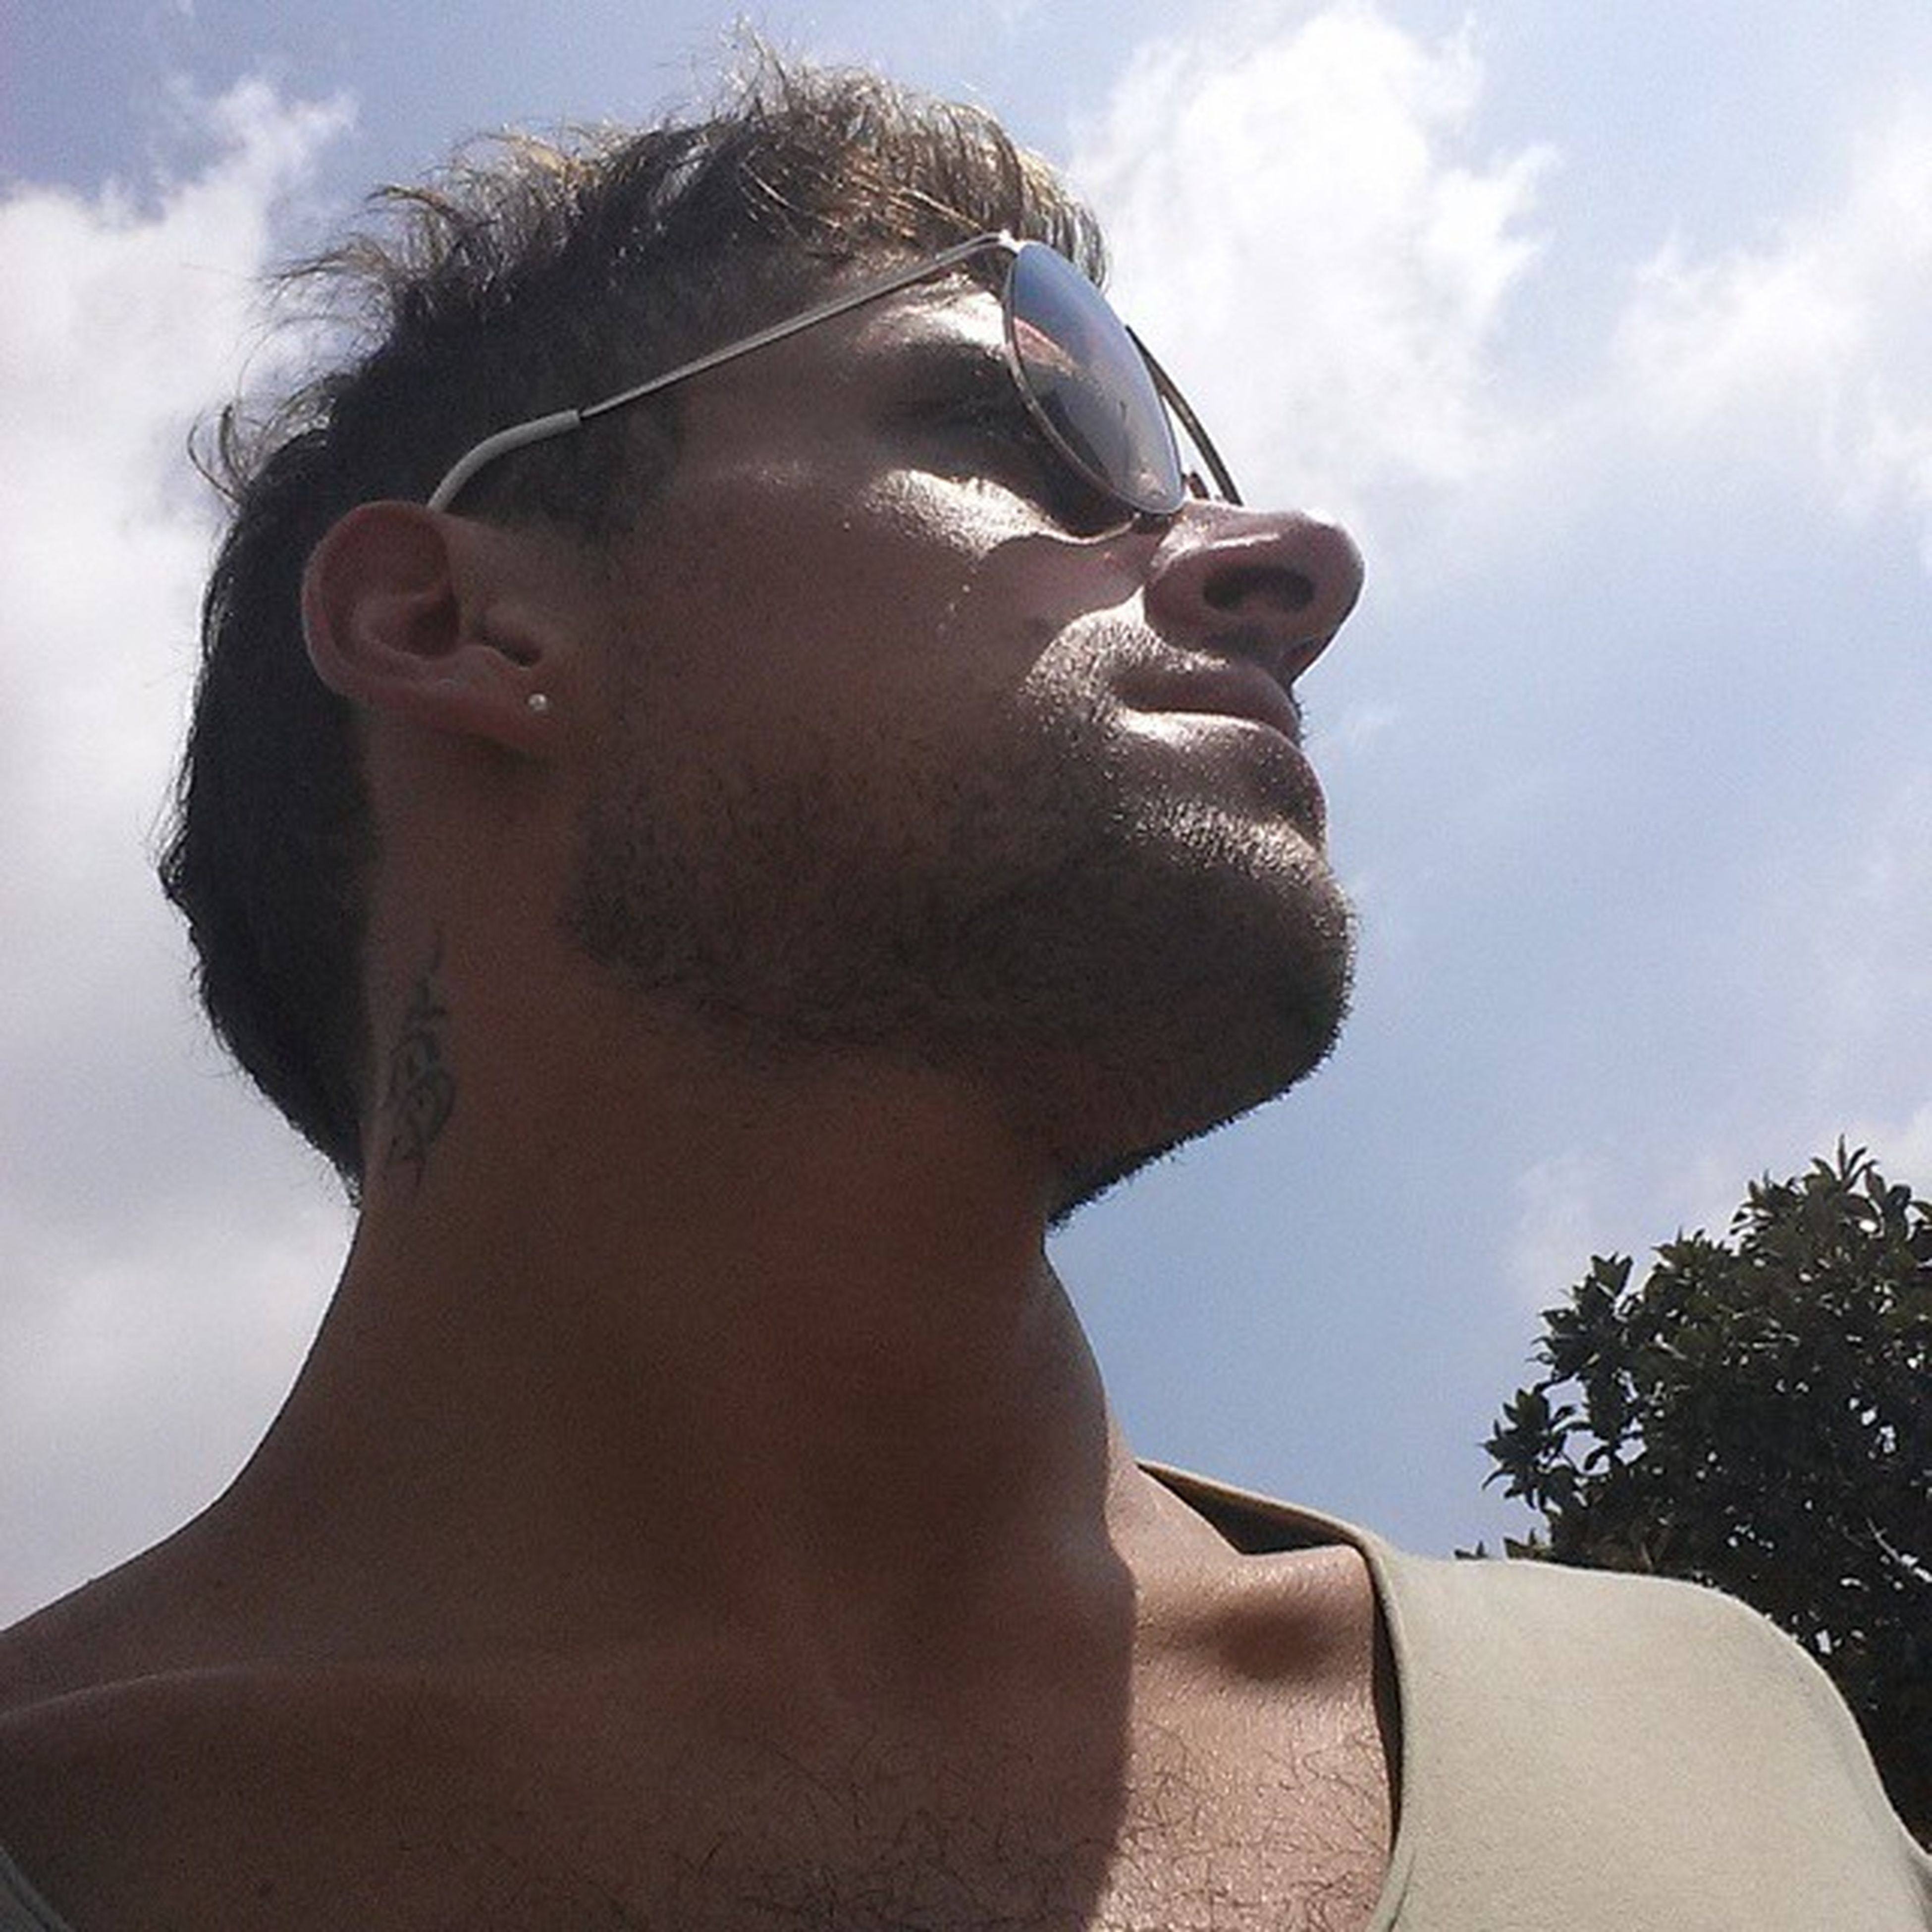 young adult, person, headshot, portrait, sky, looking at camera, young men, lifestyles, sunglasses, mid adult, leisure activity, front view, beard, mid adult men, close-up, head and shoulders